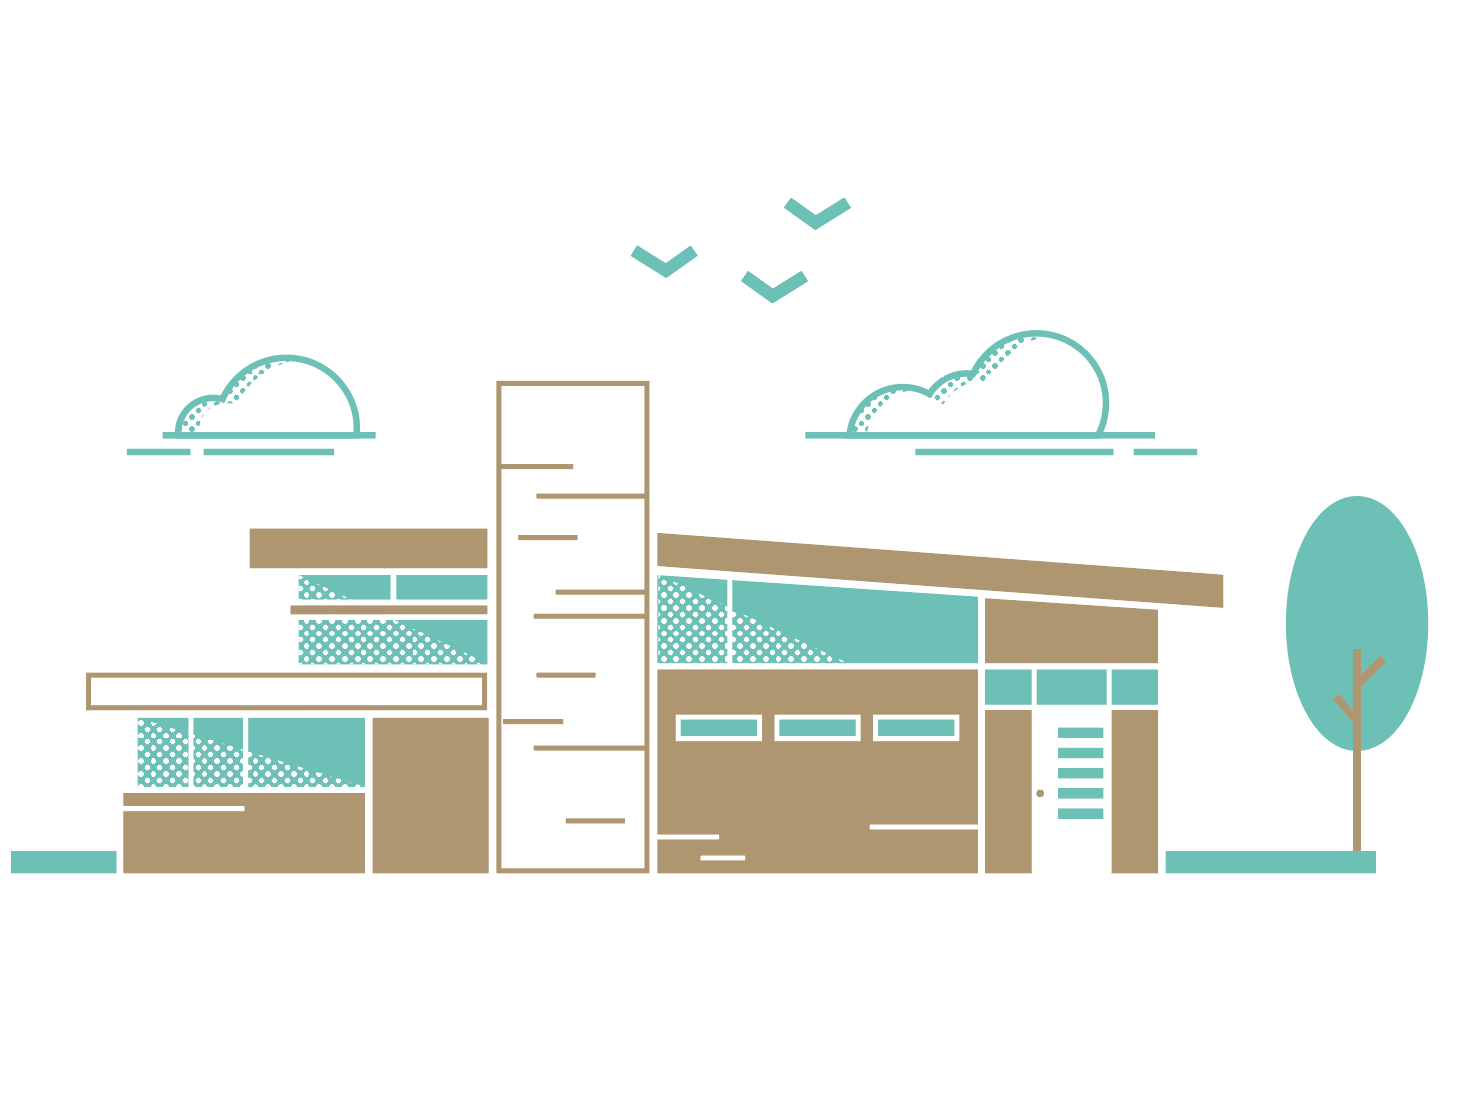 Mid Century Home Illustration by Mike Tyer on Dribbble